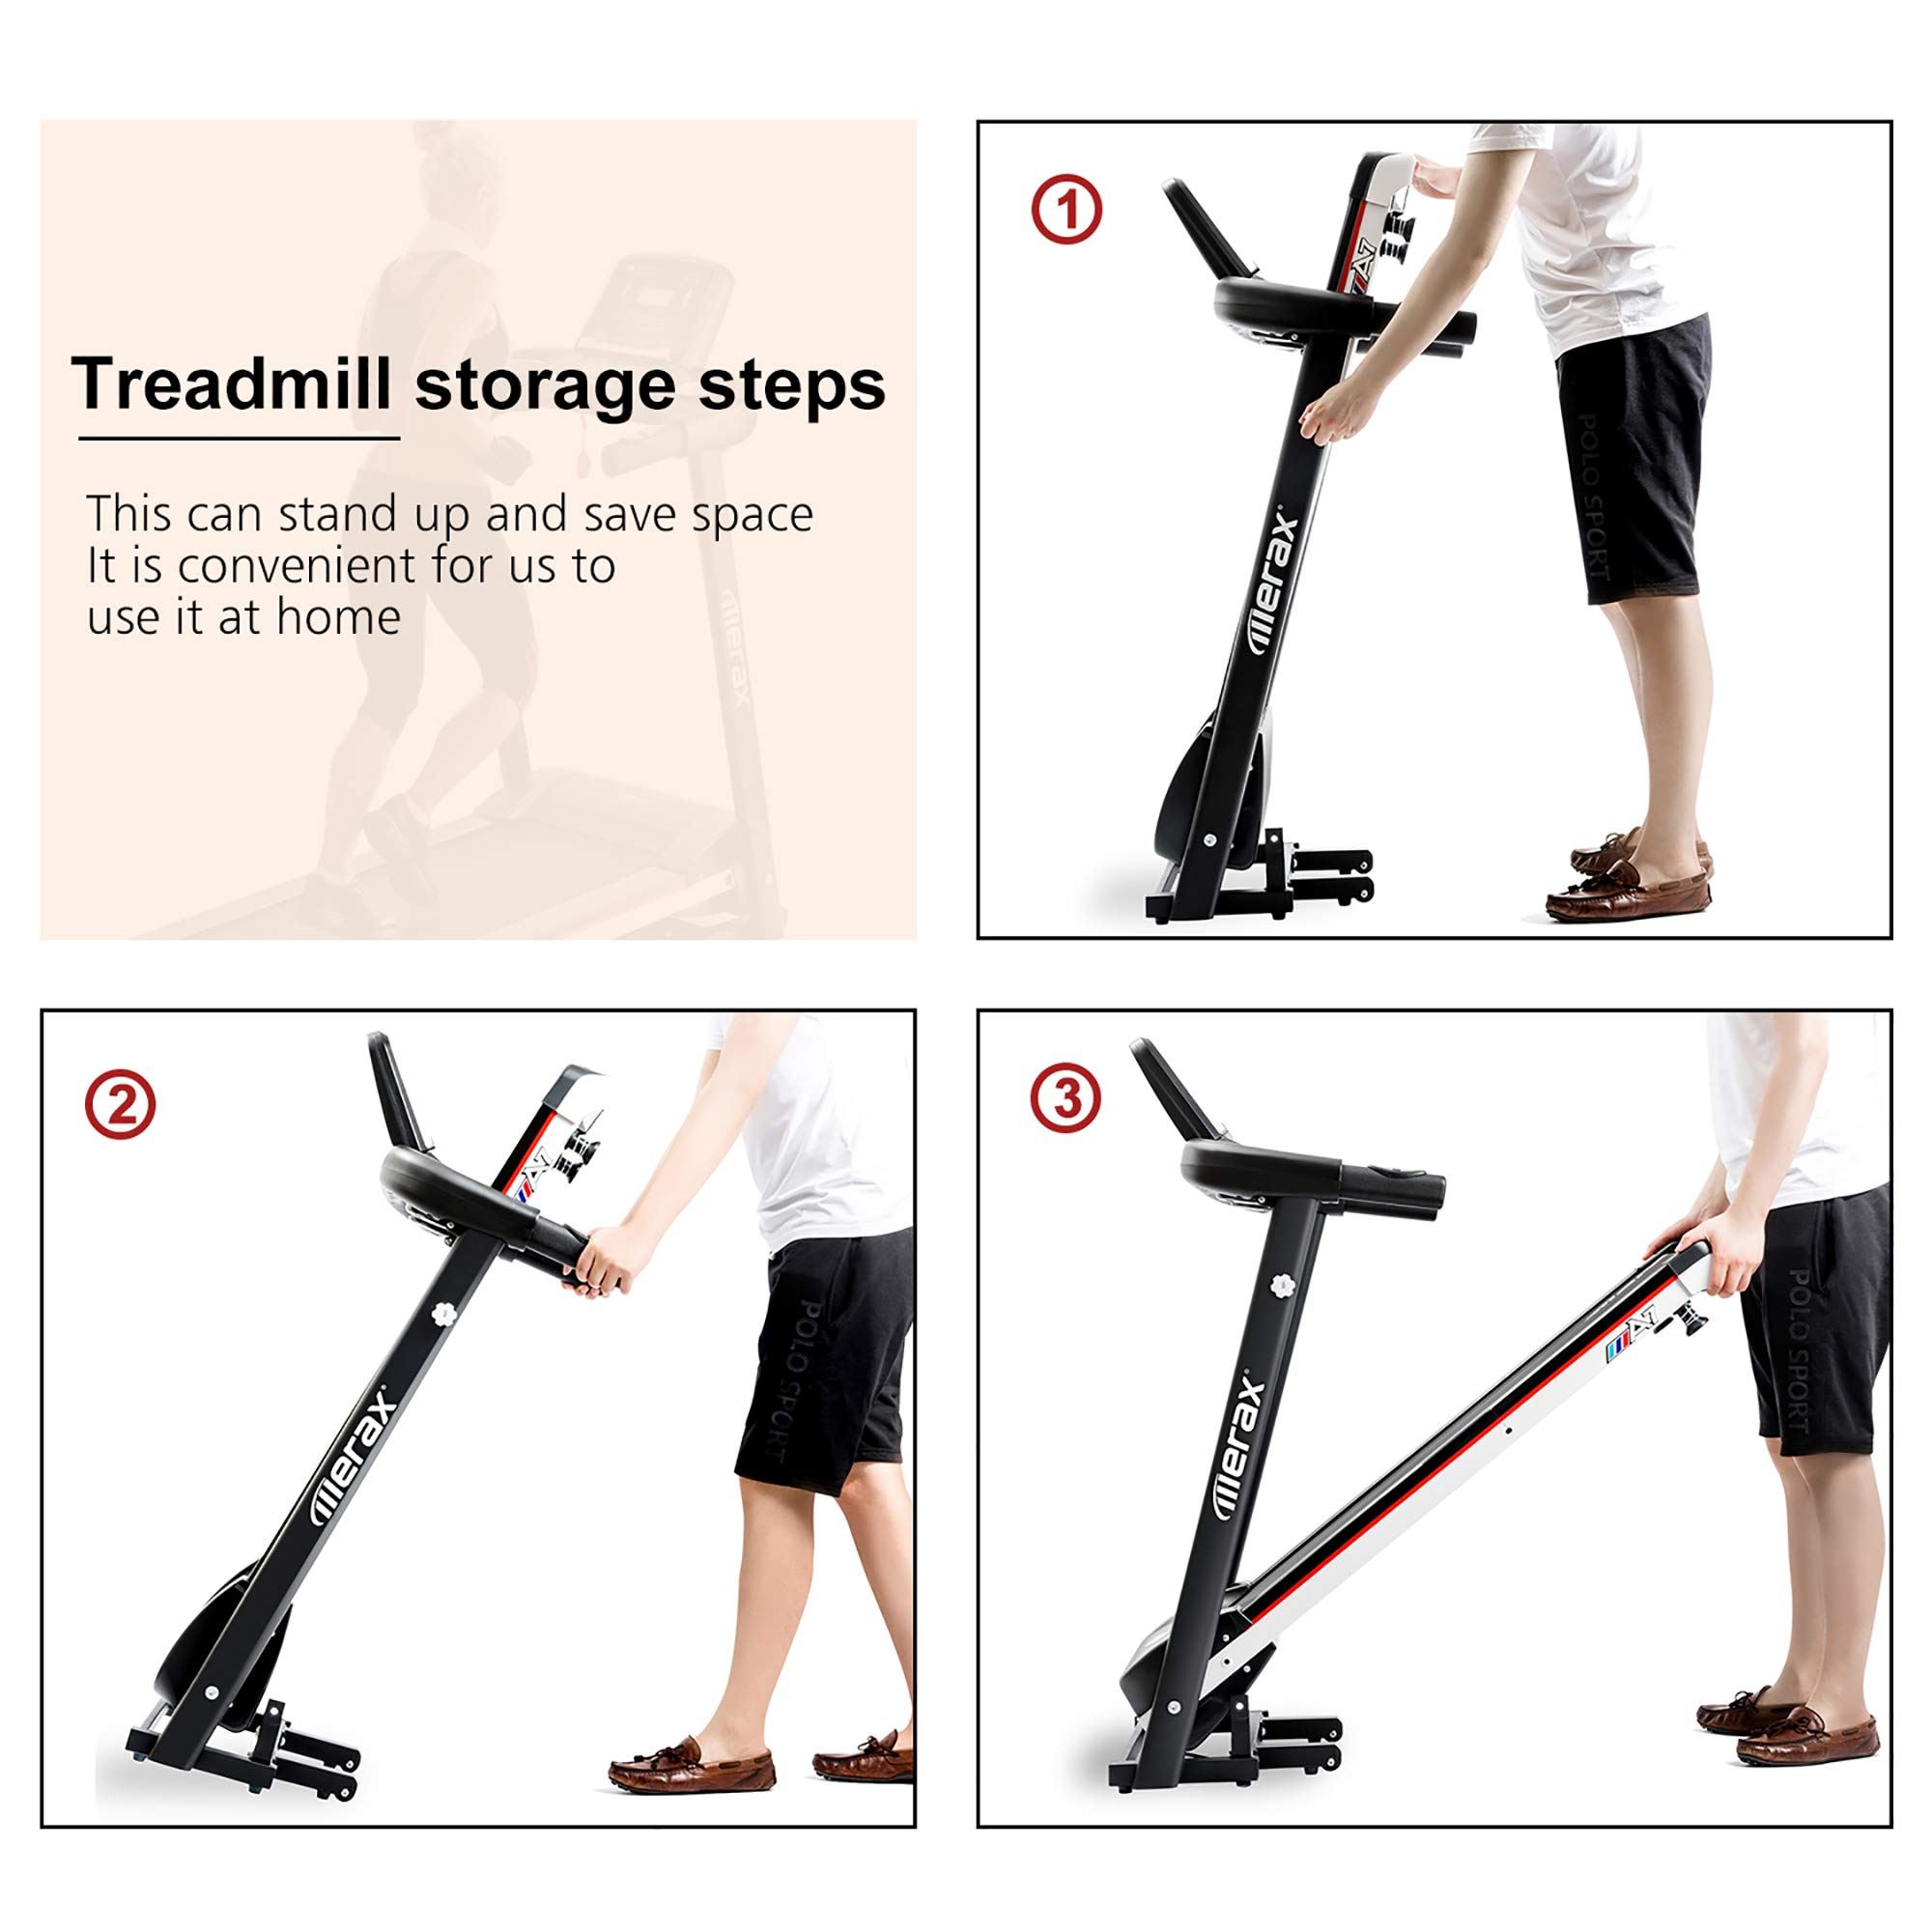 Merax Folding Electric Treadmill Easy Assembly Motorized Power Running Machine Fitness by Merax (Image #8)